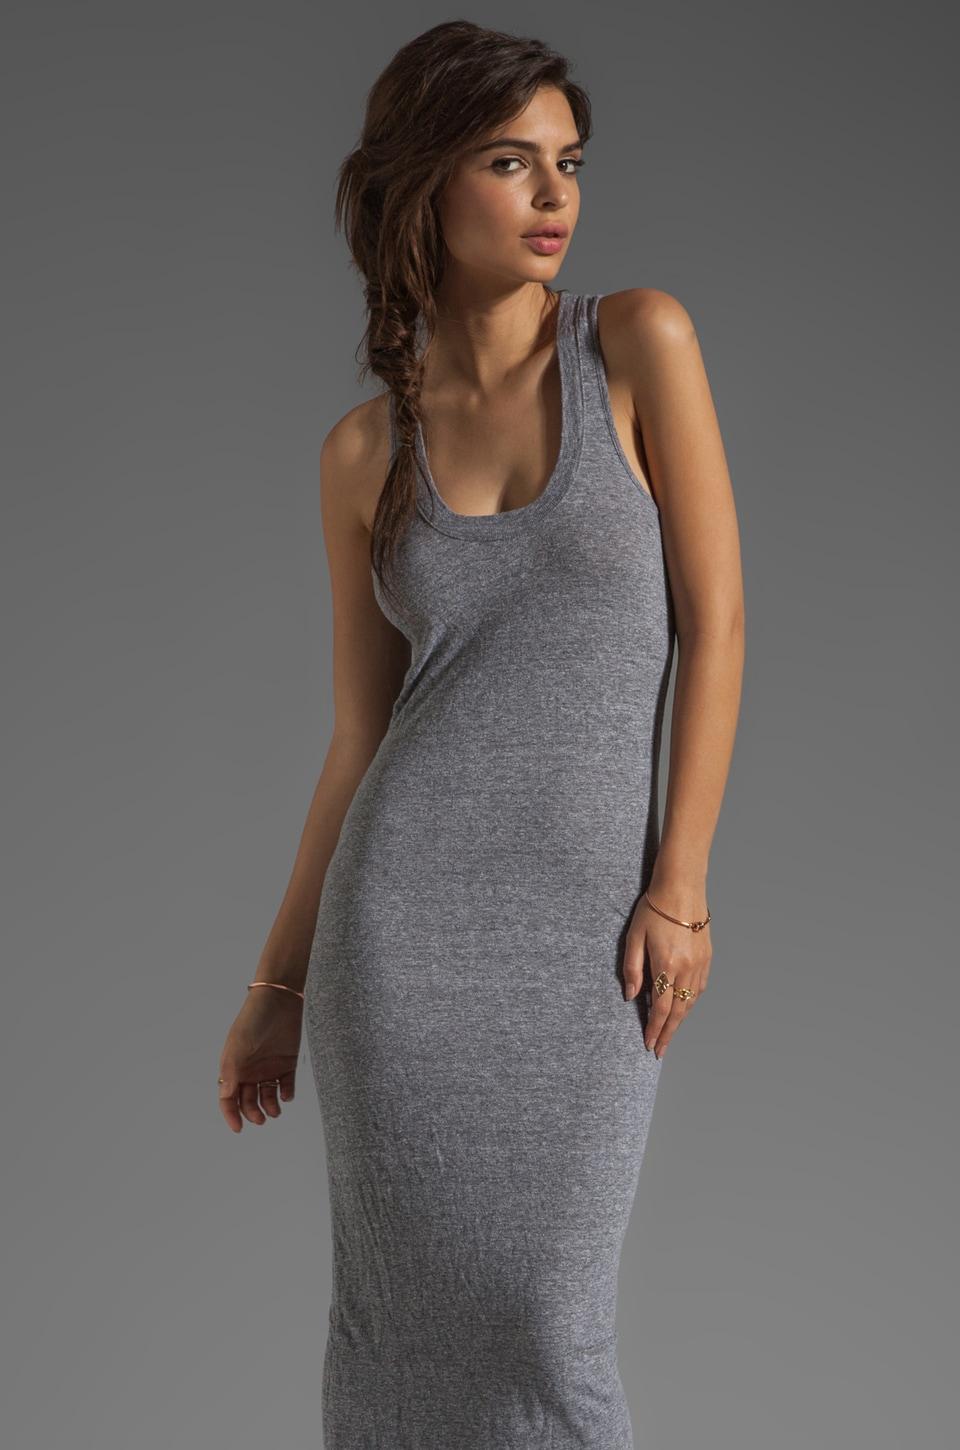 MONROW Granite Basics Tank Maxi Dress in Granite